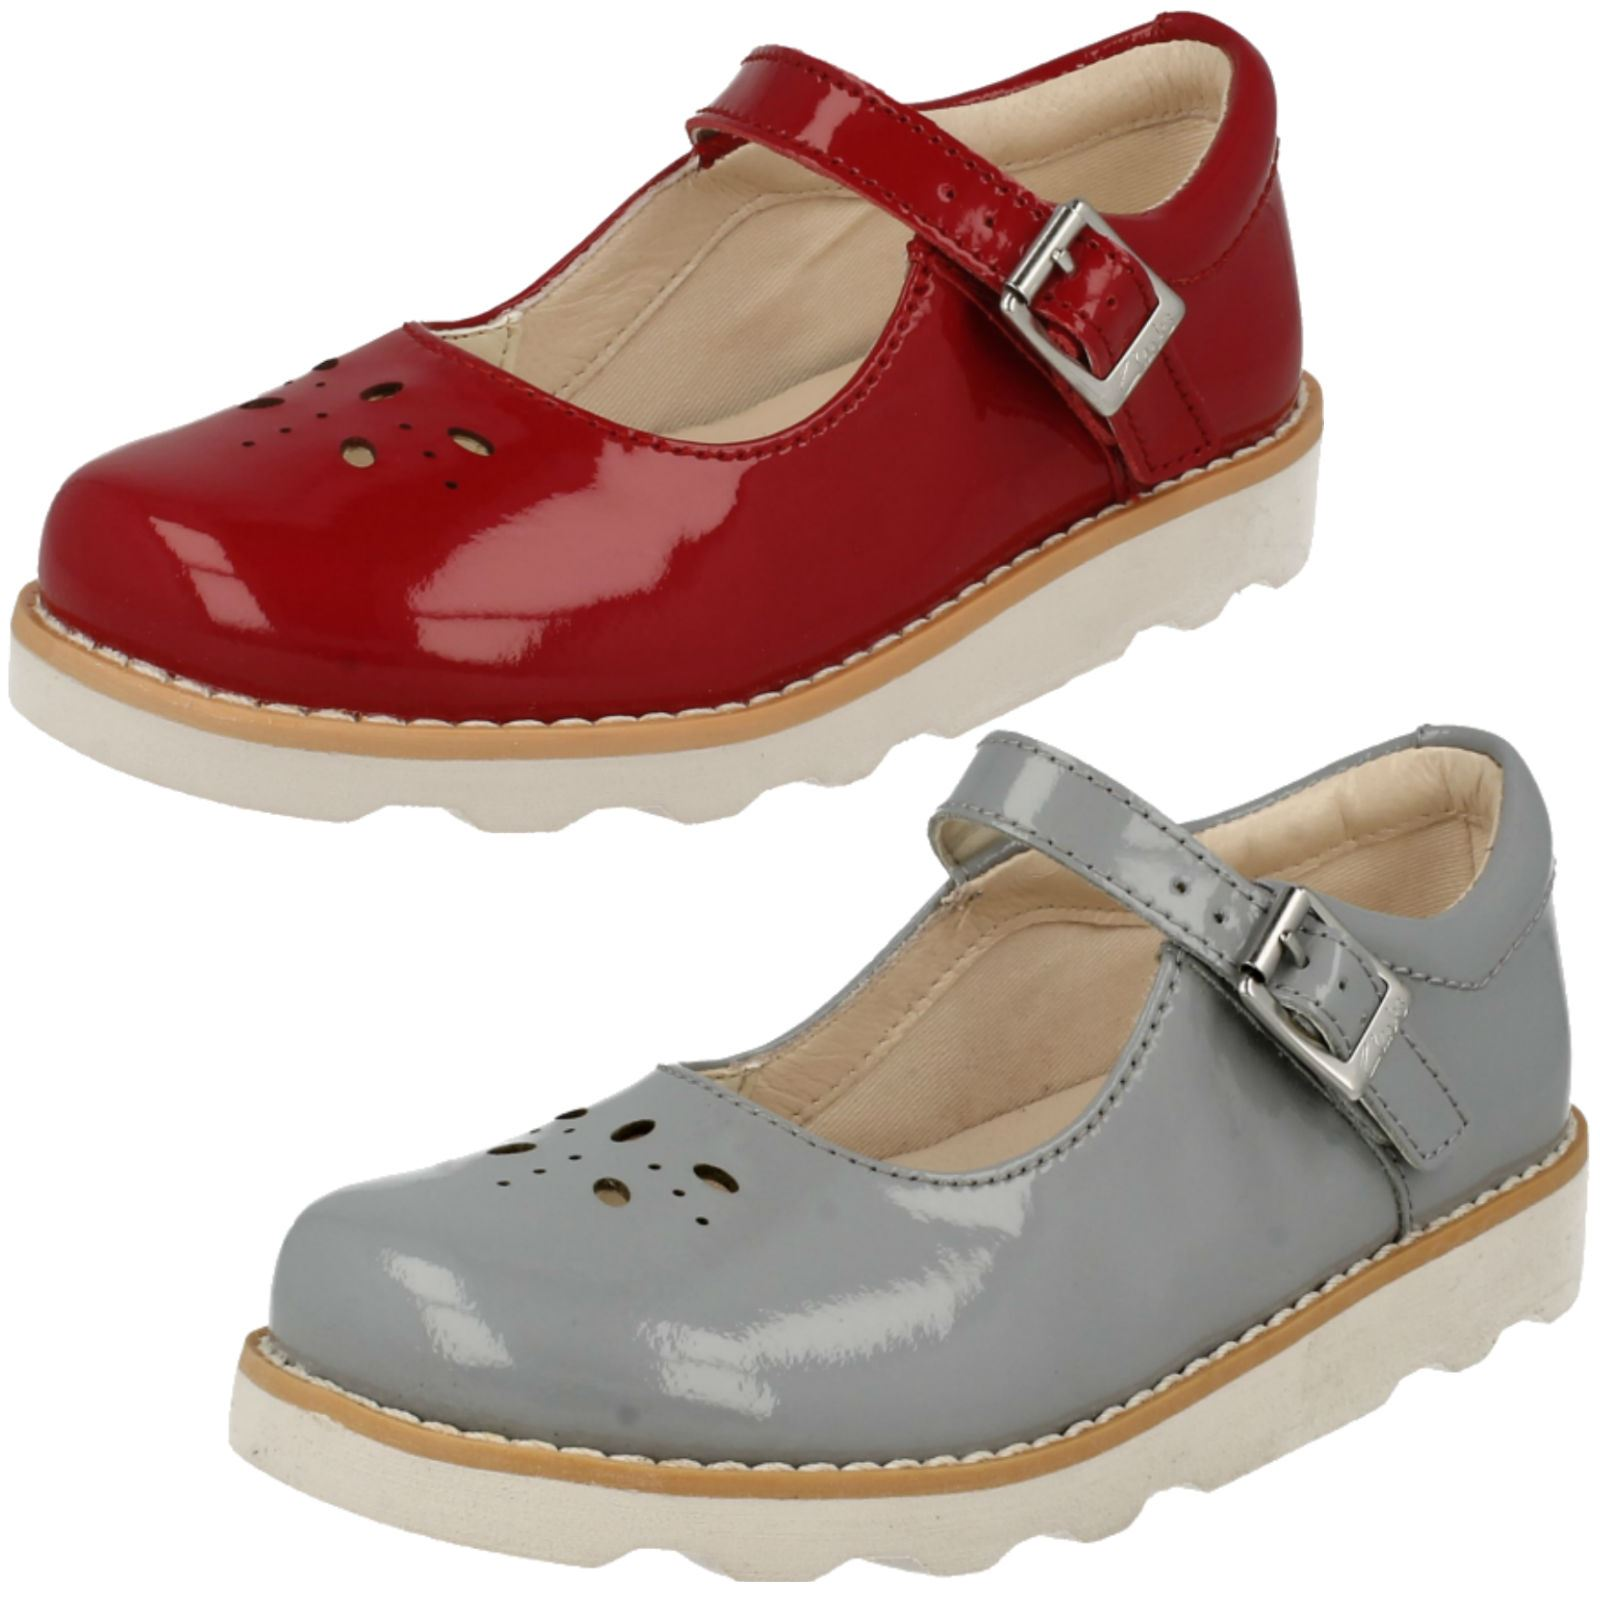 Infant/Junior Girls Clarks Smart Shoes *Crown Posy*